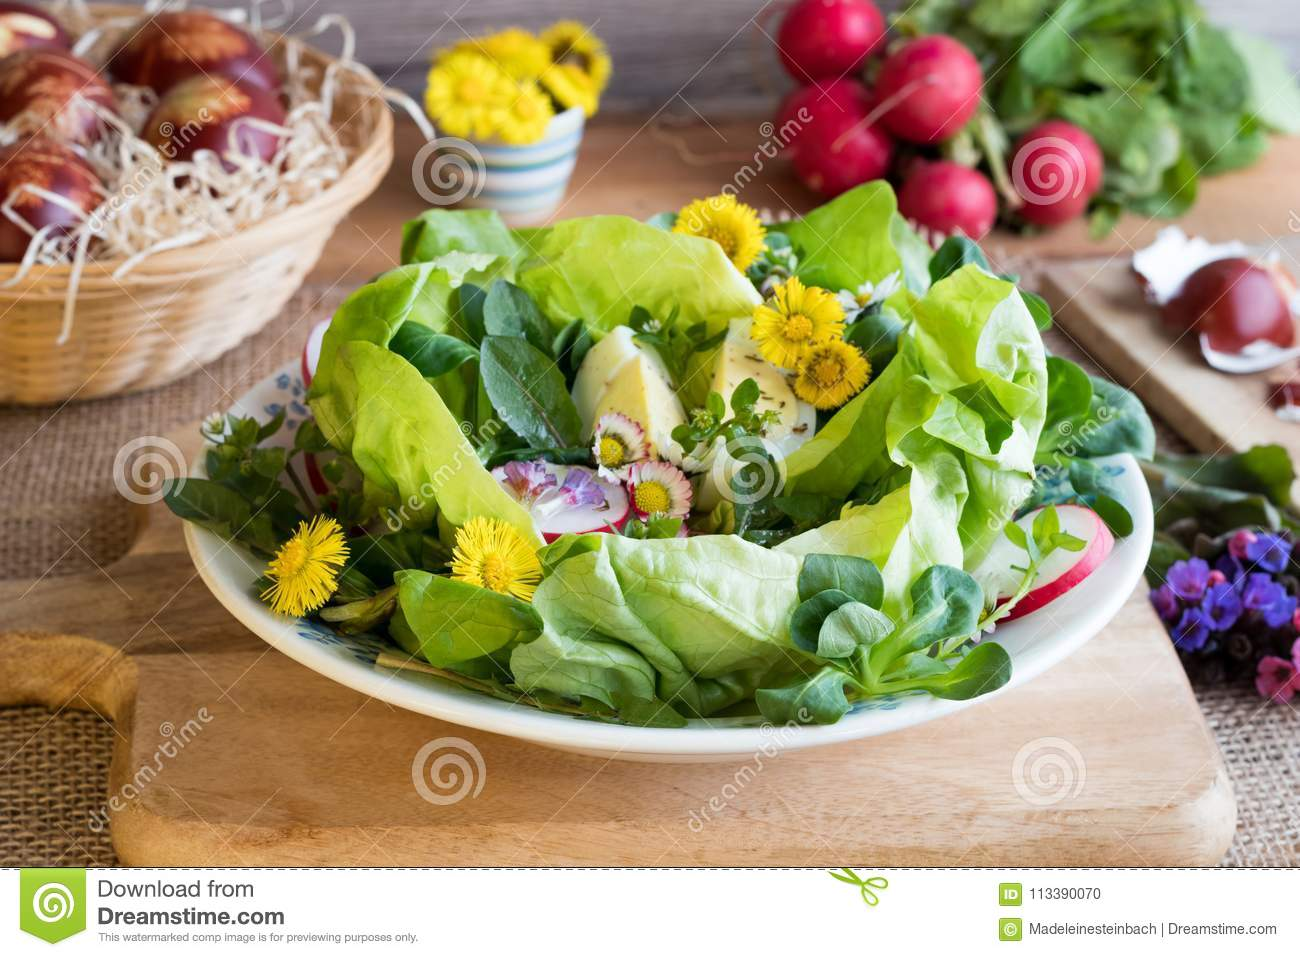 Spring salad with eggs and wild edible plants